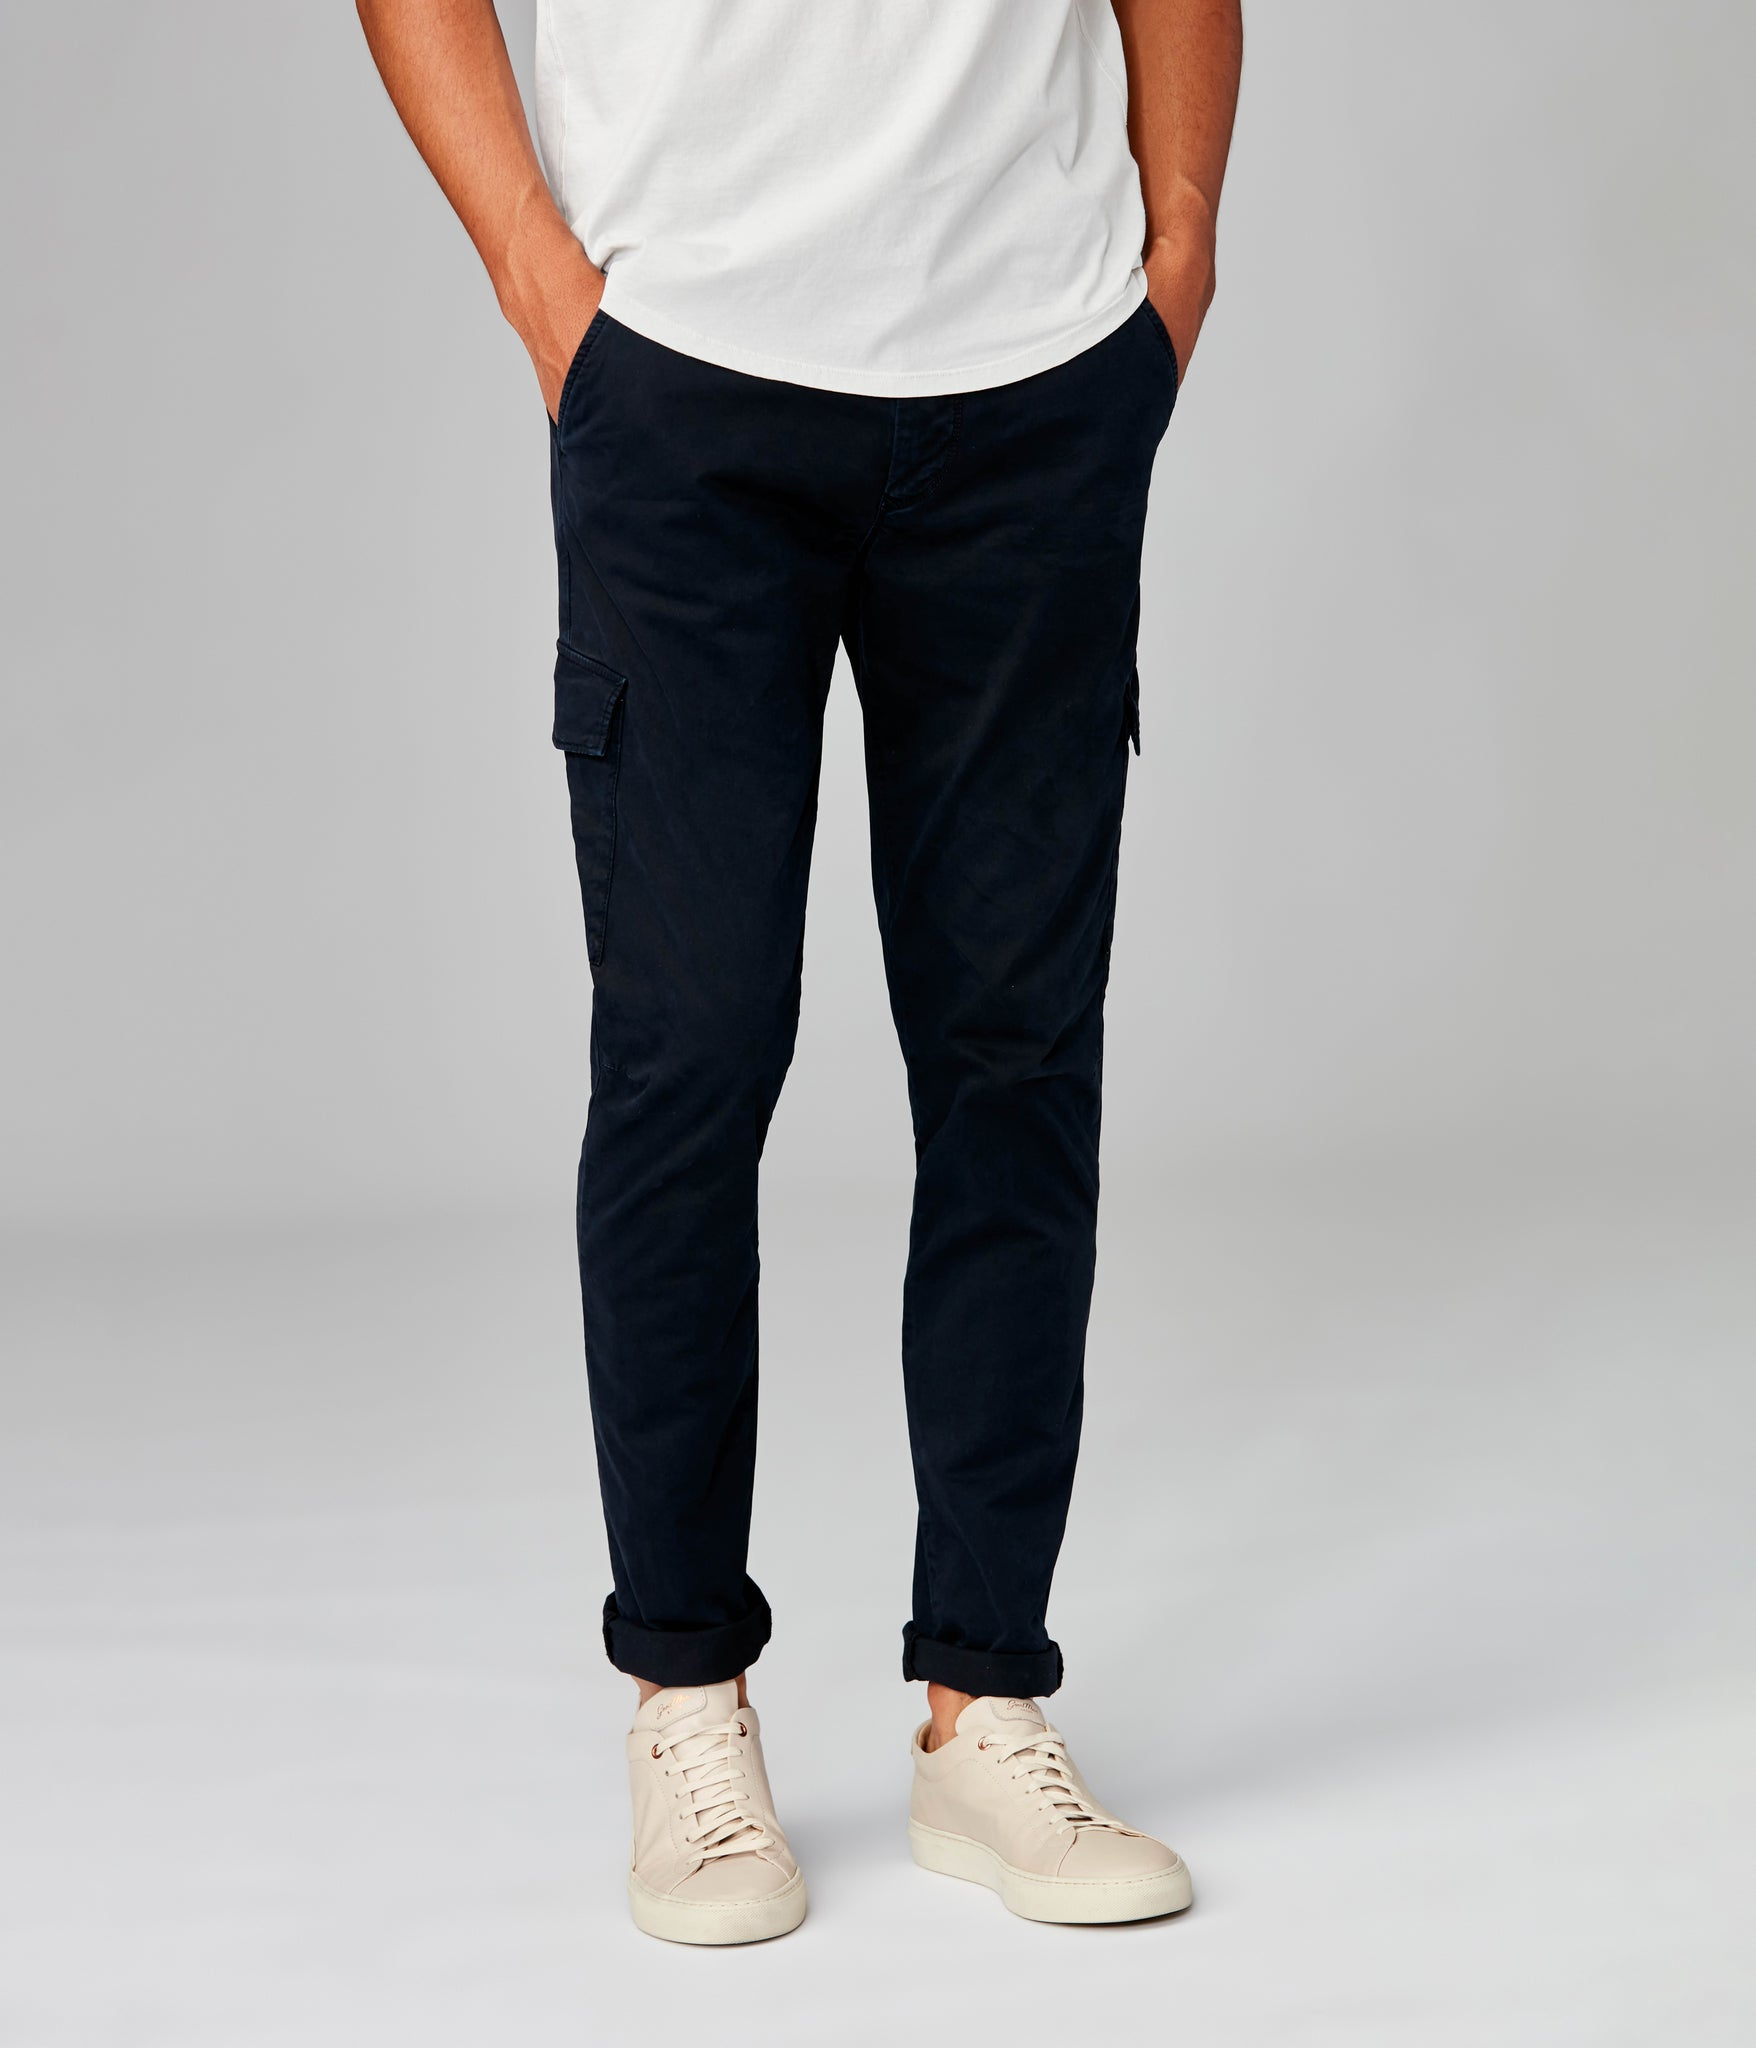 Pro Stretch Twill Star Cargo Chino - Black Navy